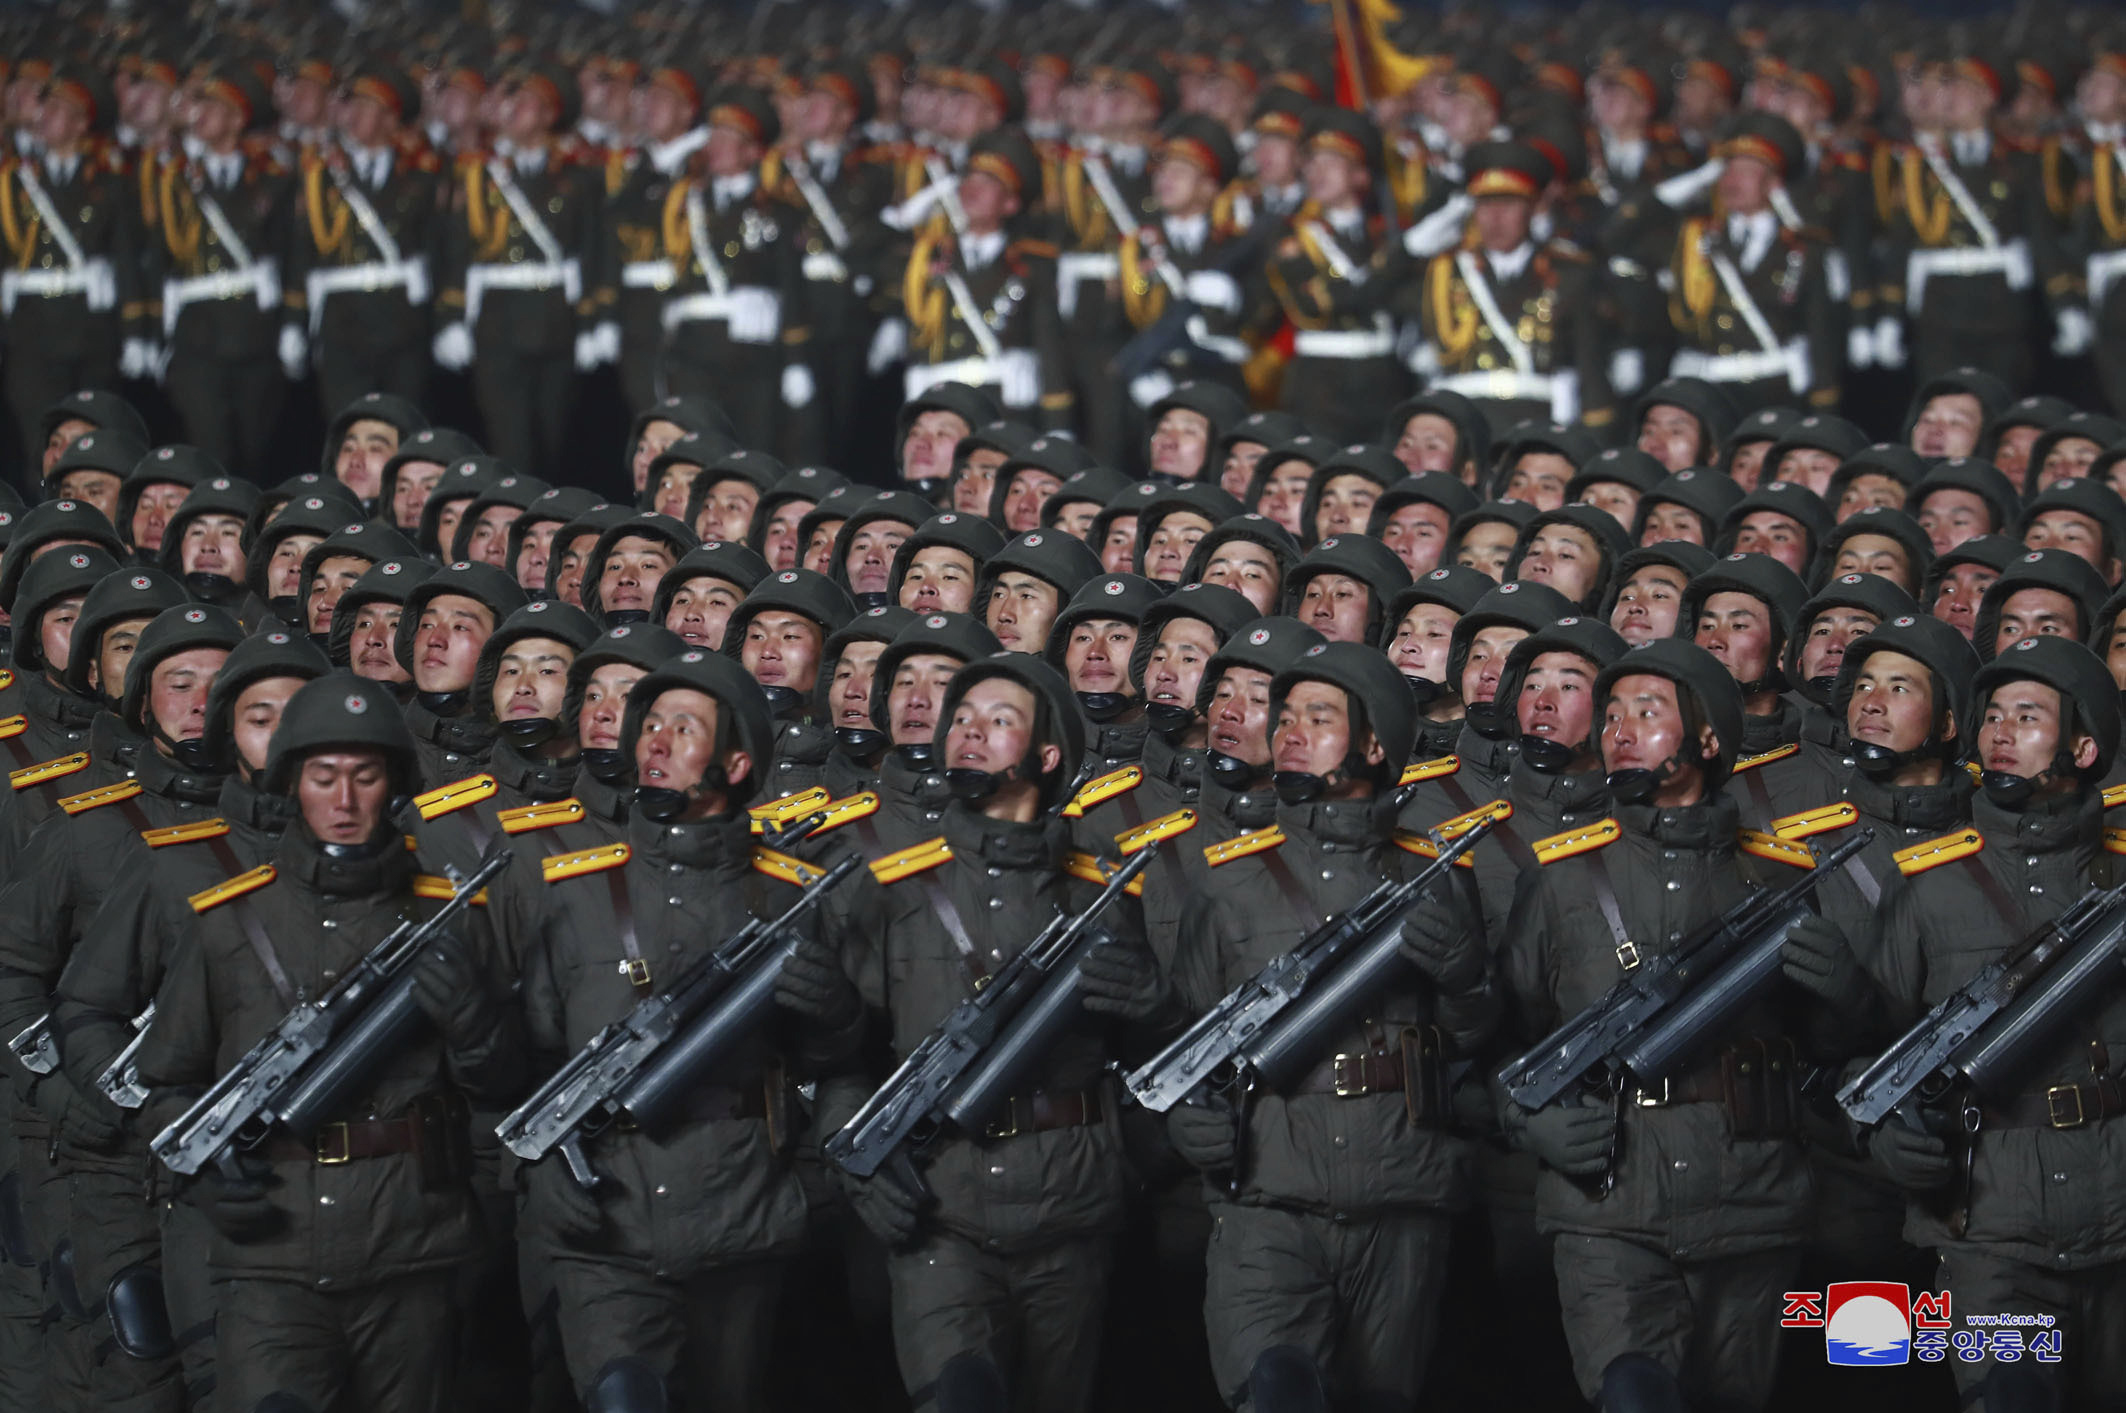 North Korean soldiers march in formation during a military parade in Pyongyang, North Korea, on Jan. 14, 2021. (Korean Central News Agency/Korea News Service via AP)